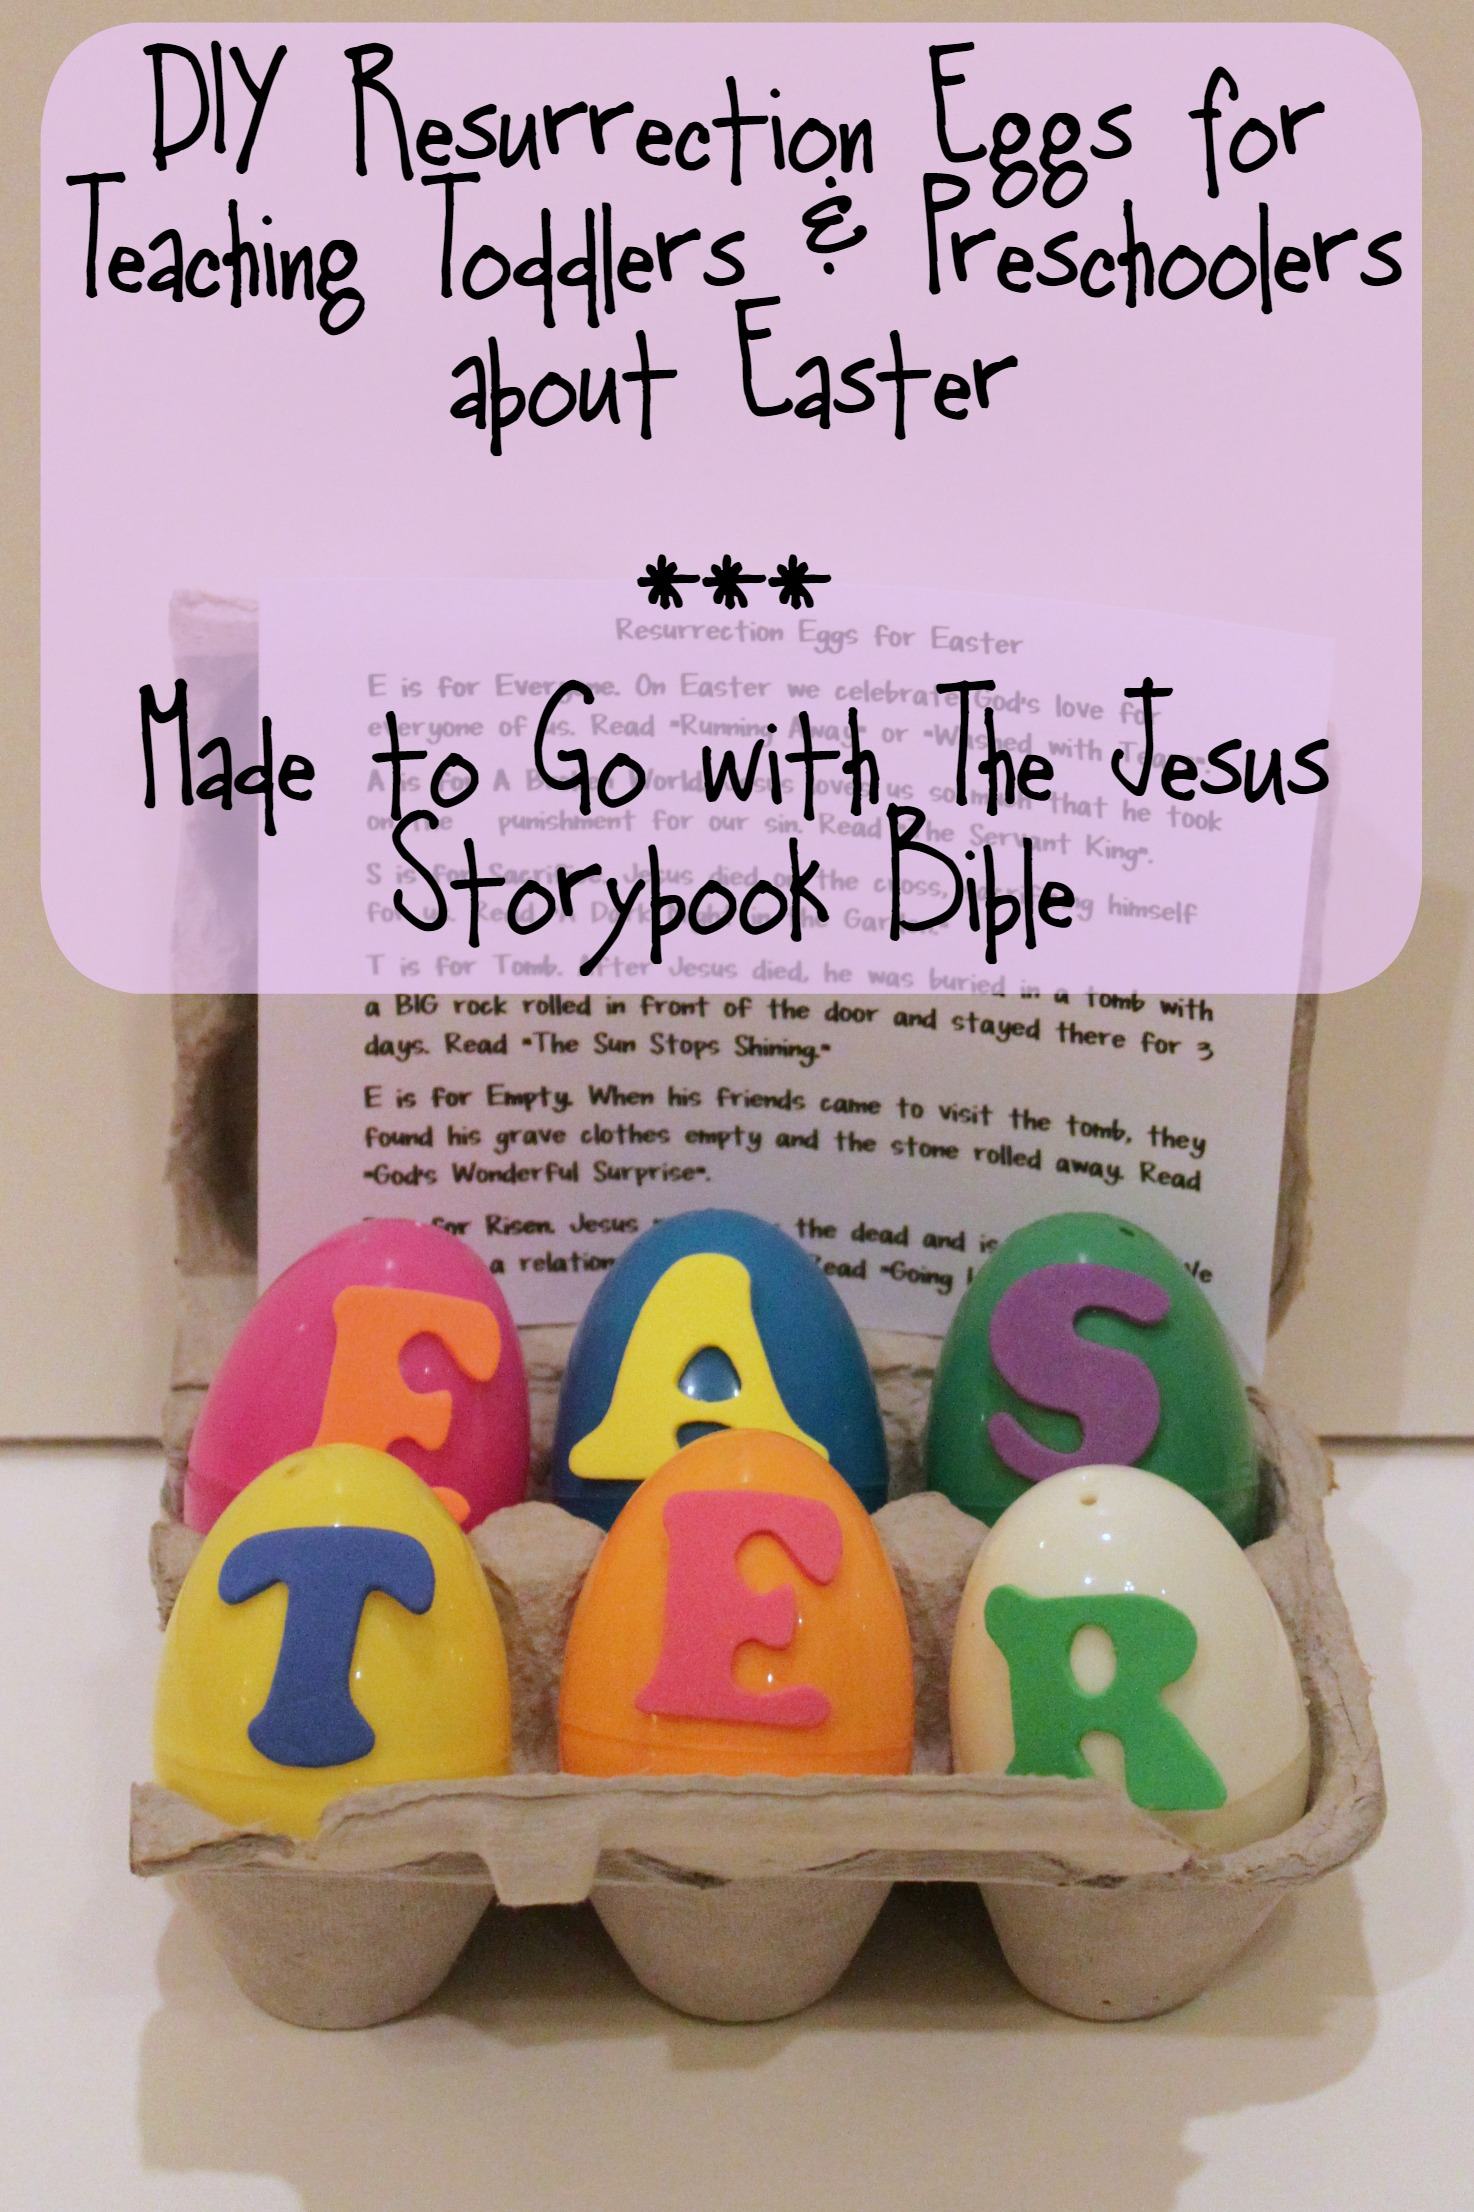 Diy Resurrection Eggs For Toddlers And Preschool Kids